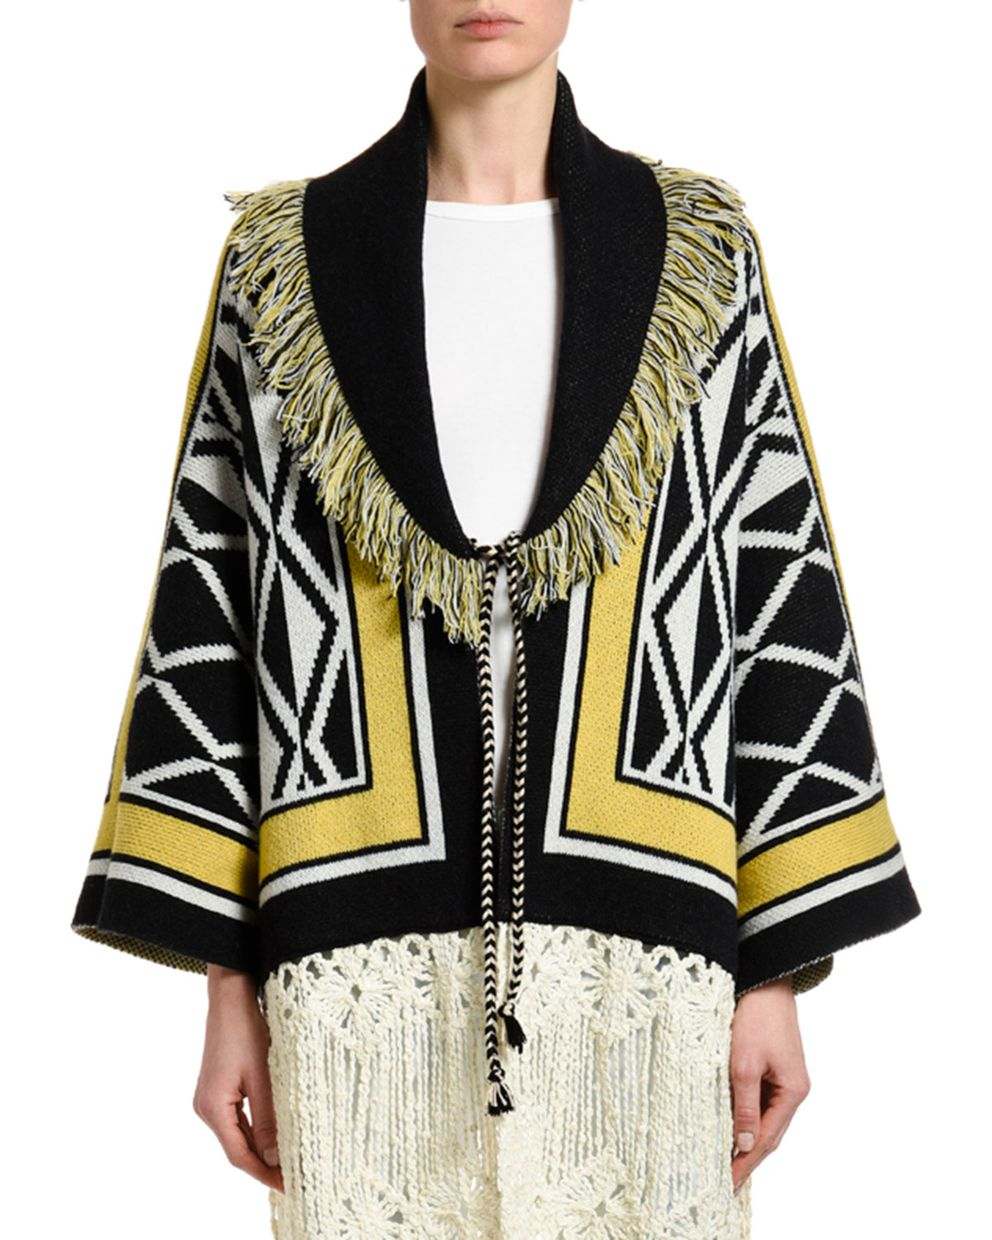 Alanui Ravenstail Knitted Coat (Neiman Marcus)